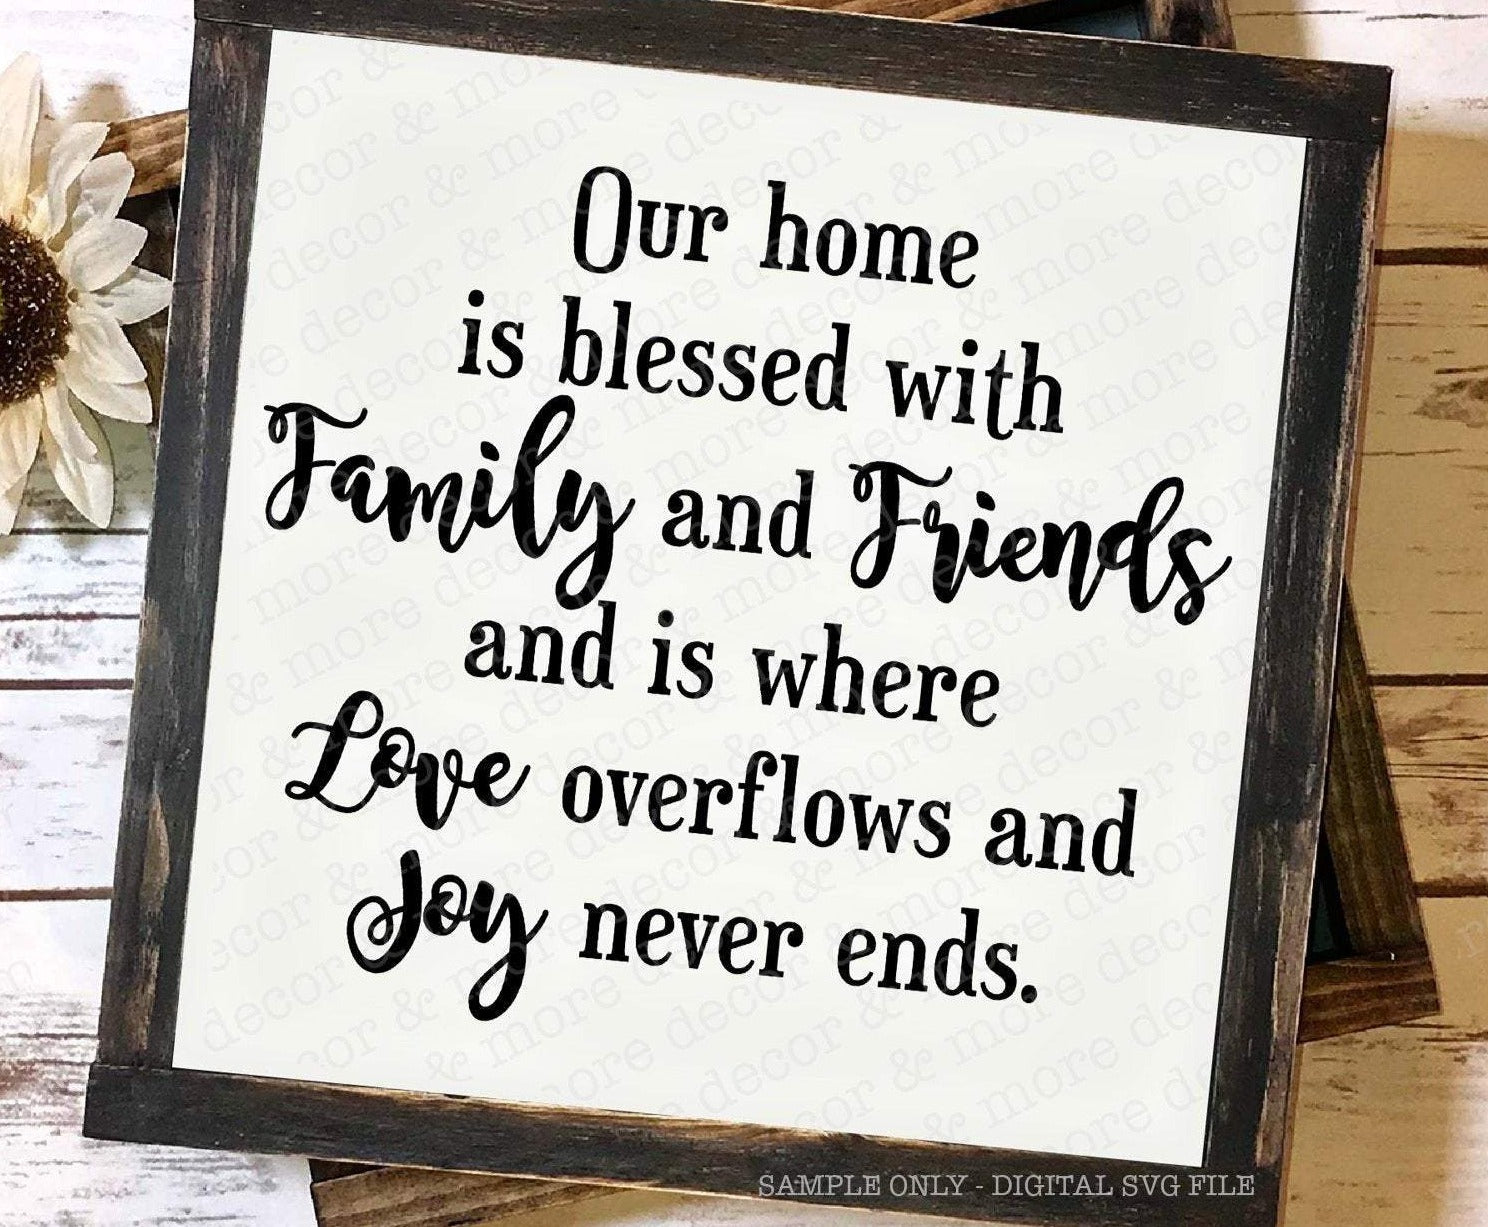 Home Quote SVG, Family Quote SVG, Family Saying SVG, Family Saying SVG Cut File, Wood Sign Svg, Home Quote Svg, Love and Joy Svg